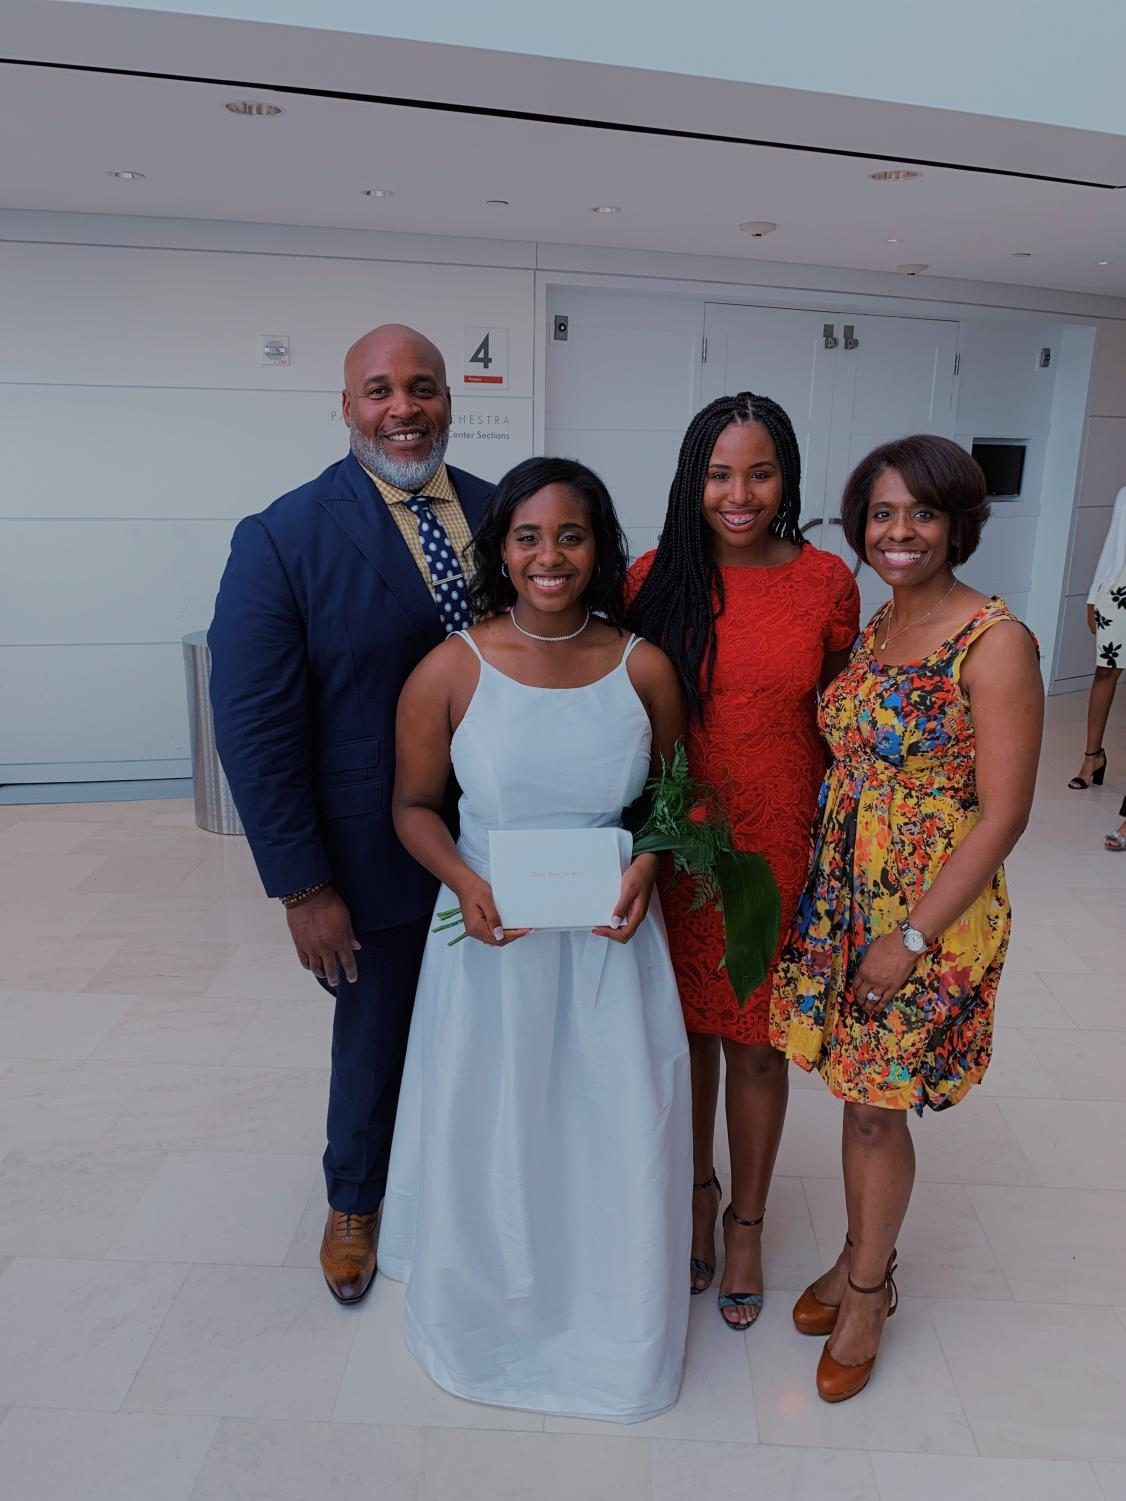 My father Robert Rogers, my sister Kendall Rogers, my mother Doris Rogers and I at Kendall's graduation ceremony at the Kauffman Center of Performing Arts May 23.